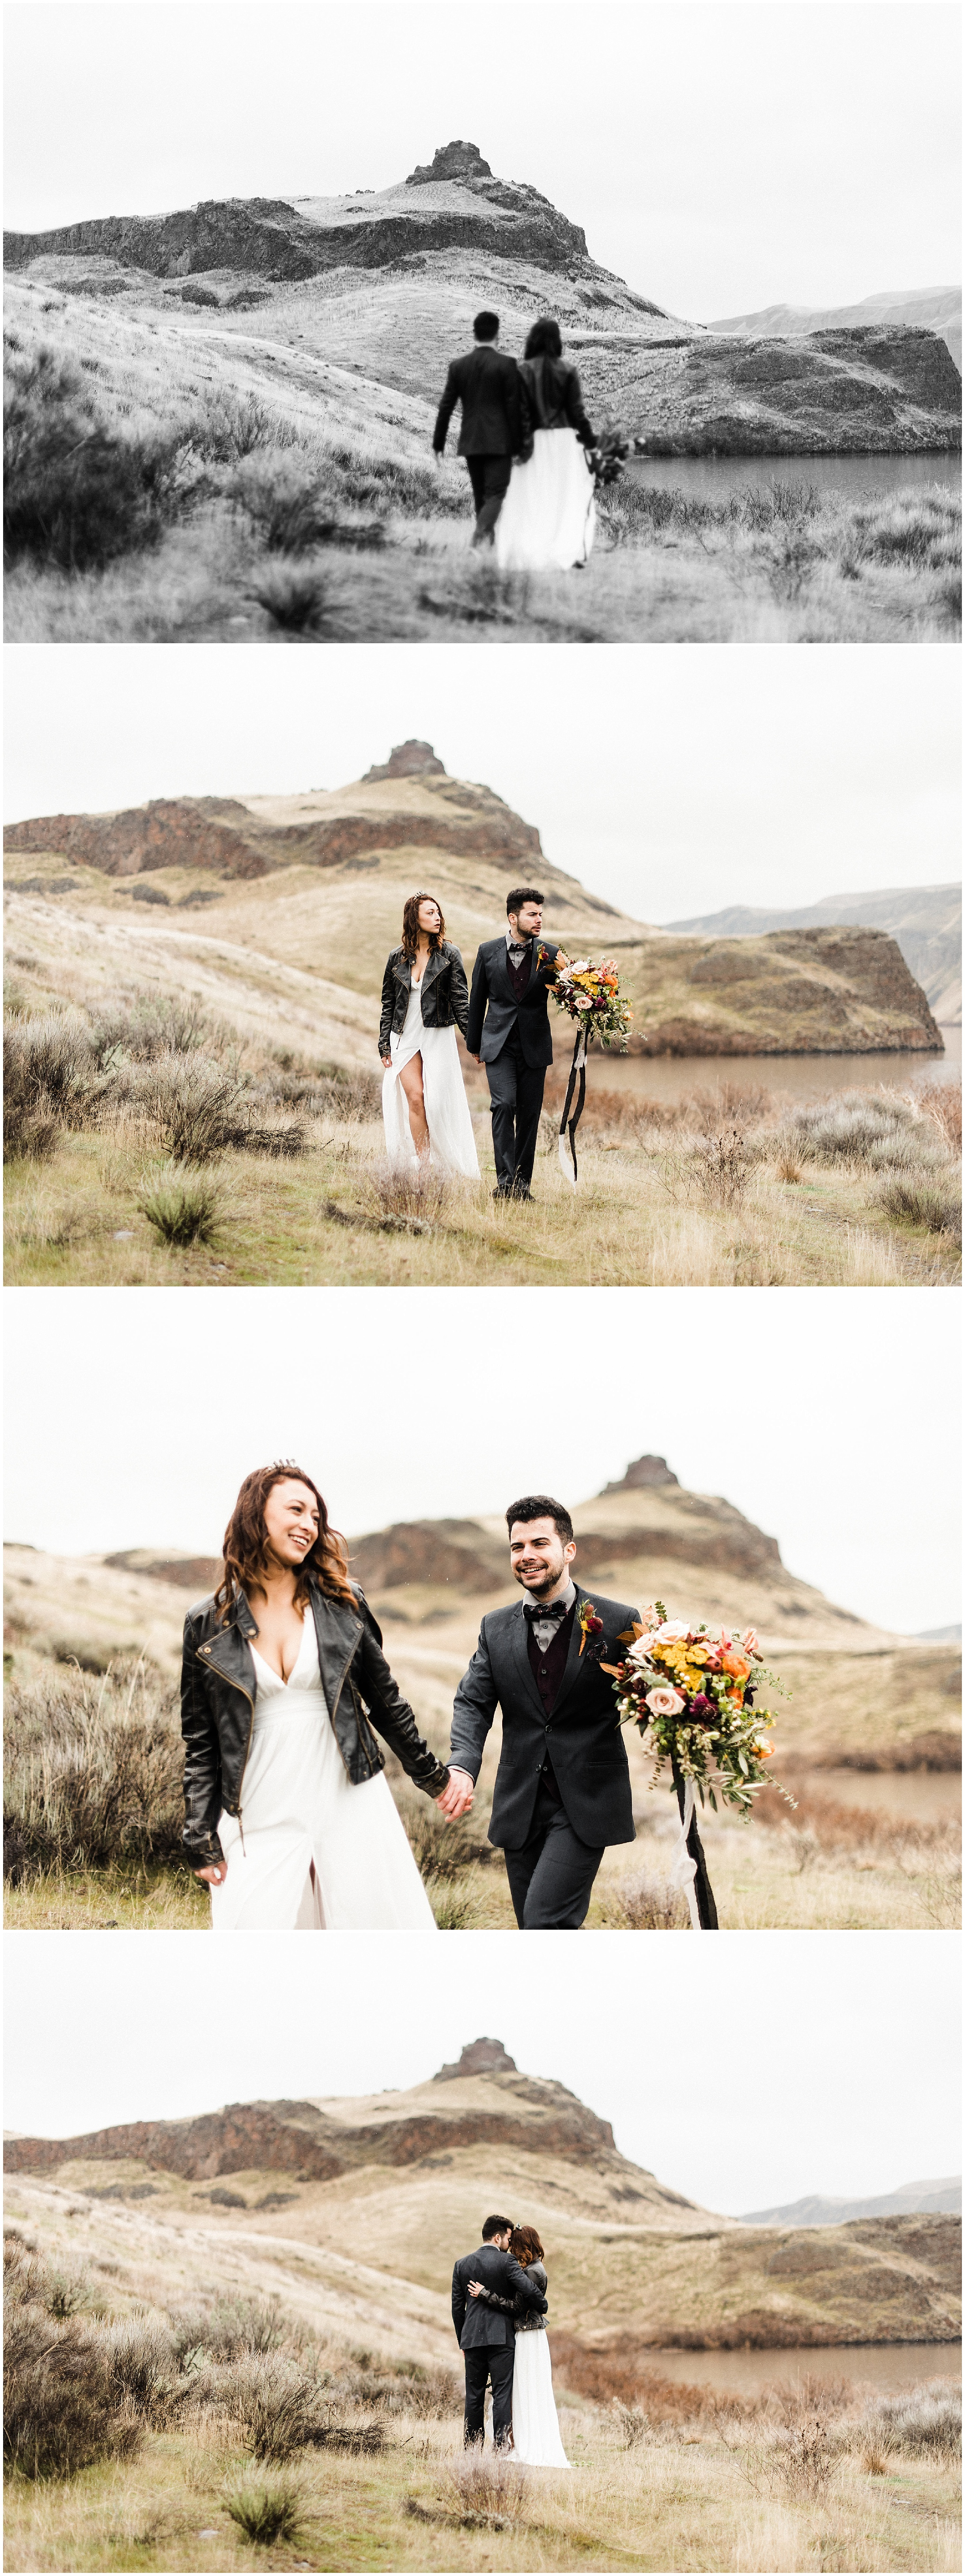 Collage of bride and groom walking in a styled elopement shoot in Lyons Ferry State Park by Forthright Photo